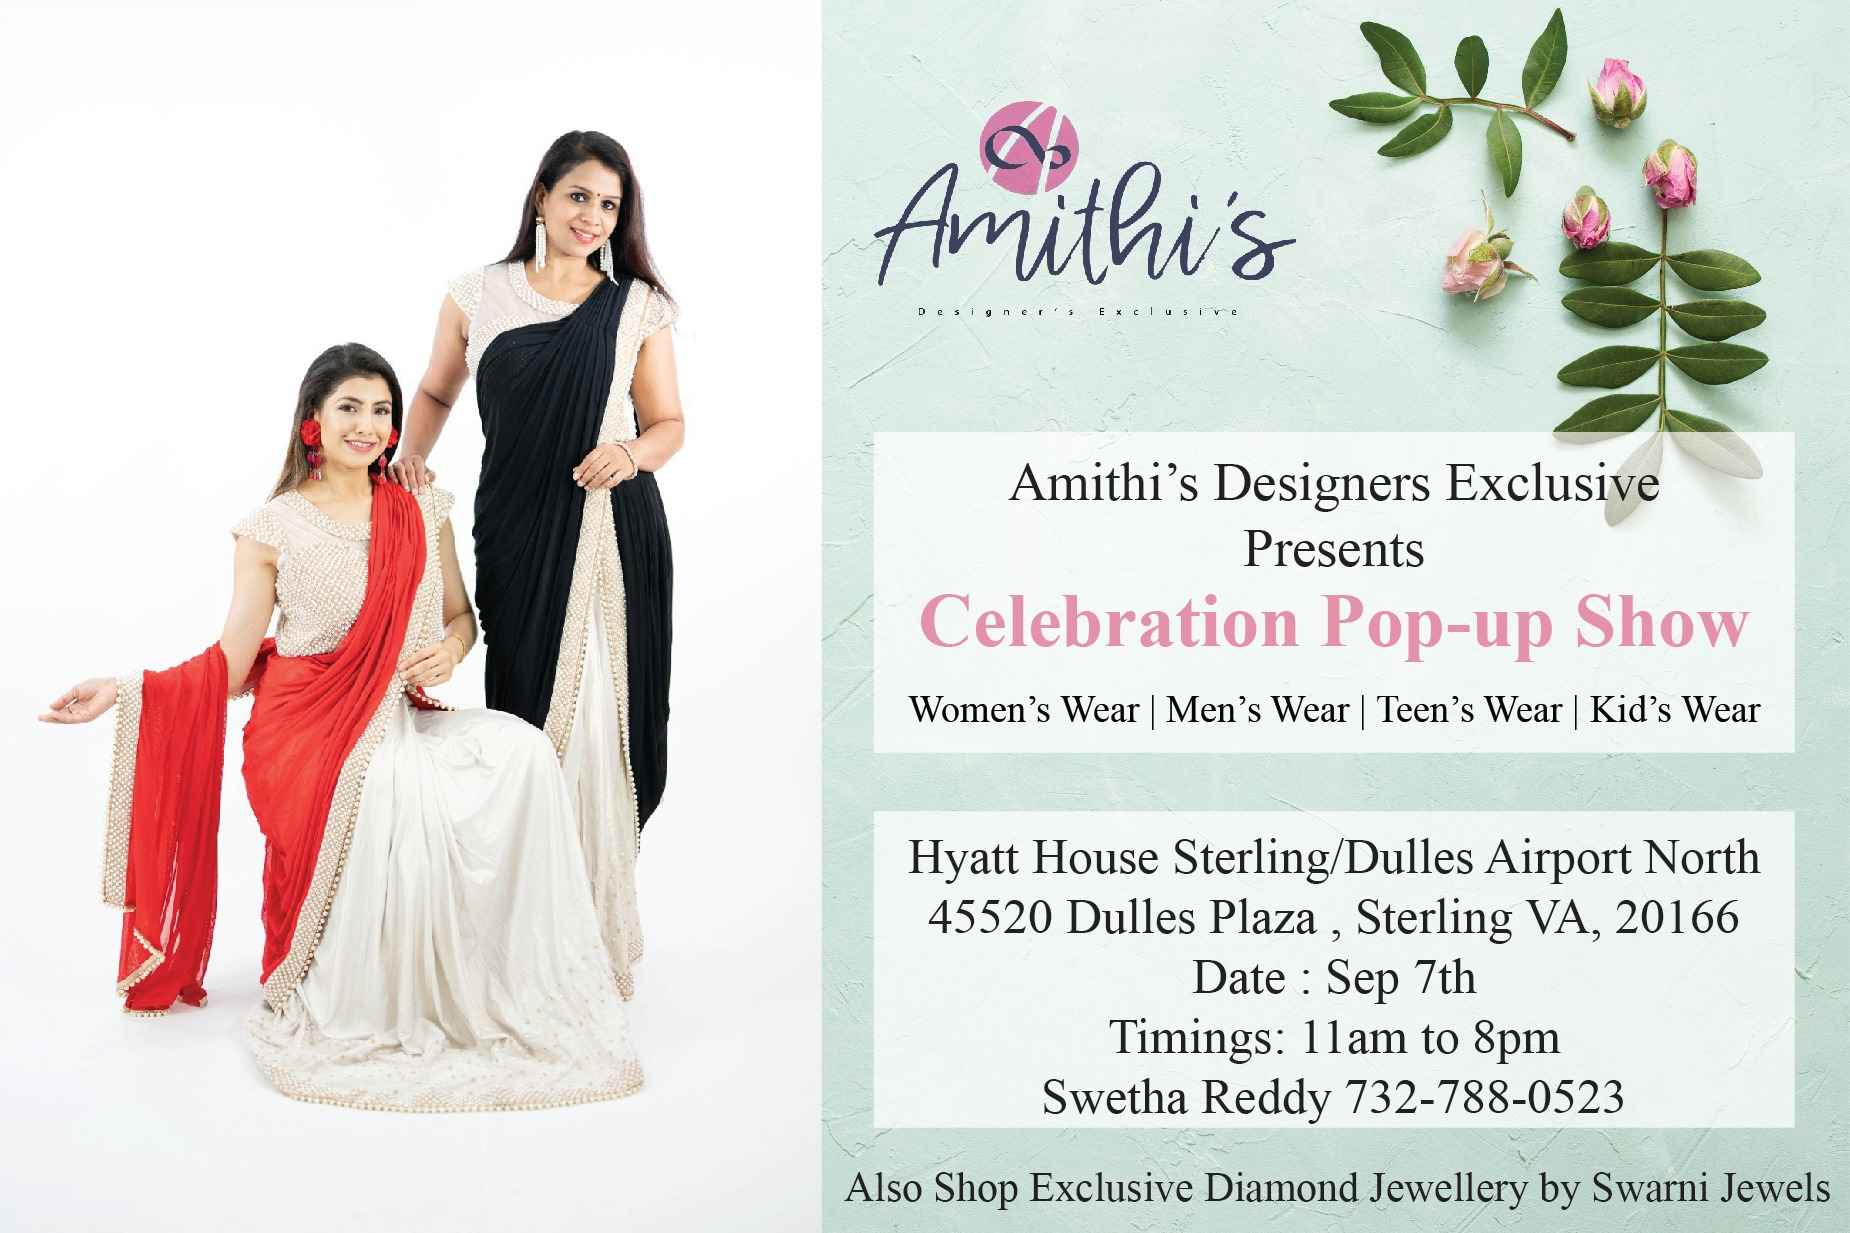 AMITHI'S DESIGNERS EXCLUSIVE Celebration Pop-up Show